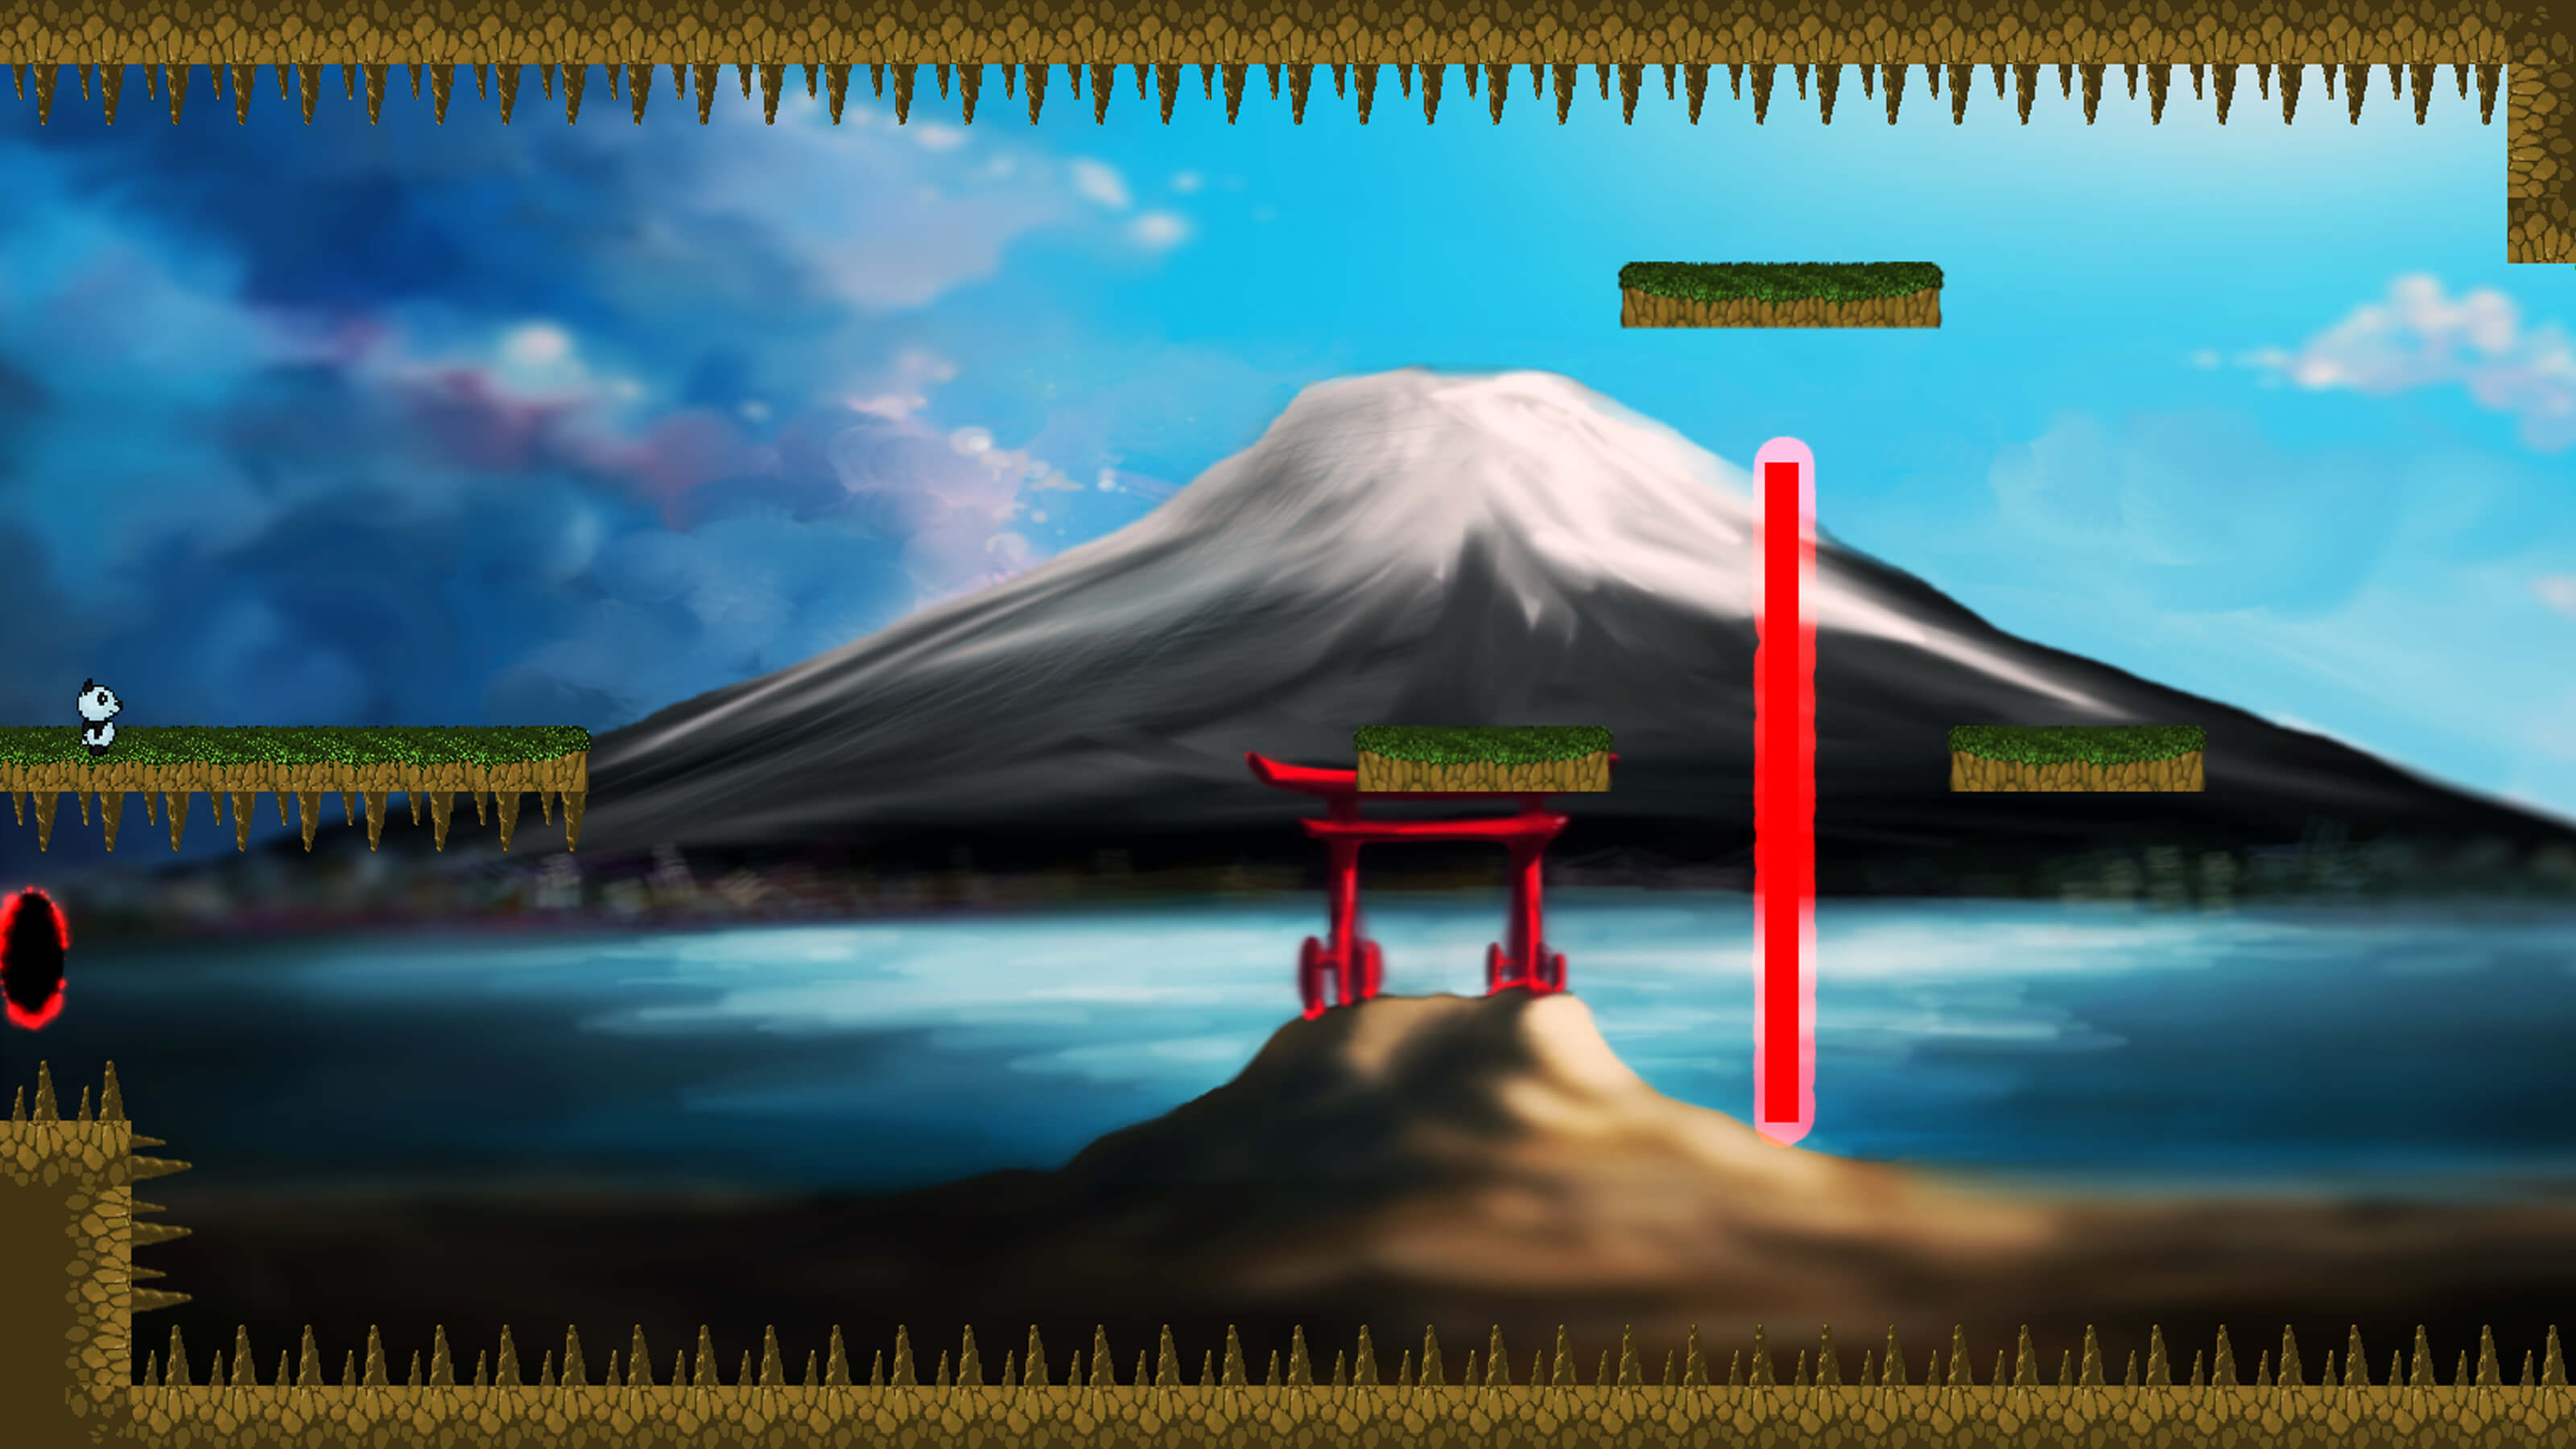 A panda stands at the left of the level, a large mountain and a Shinto shrine in the background.